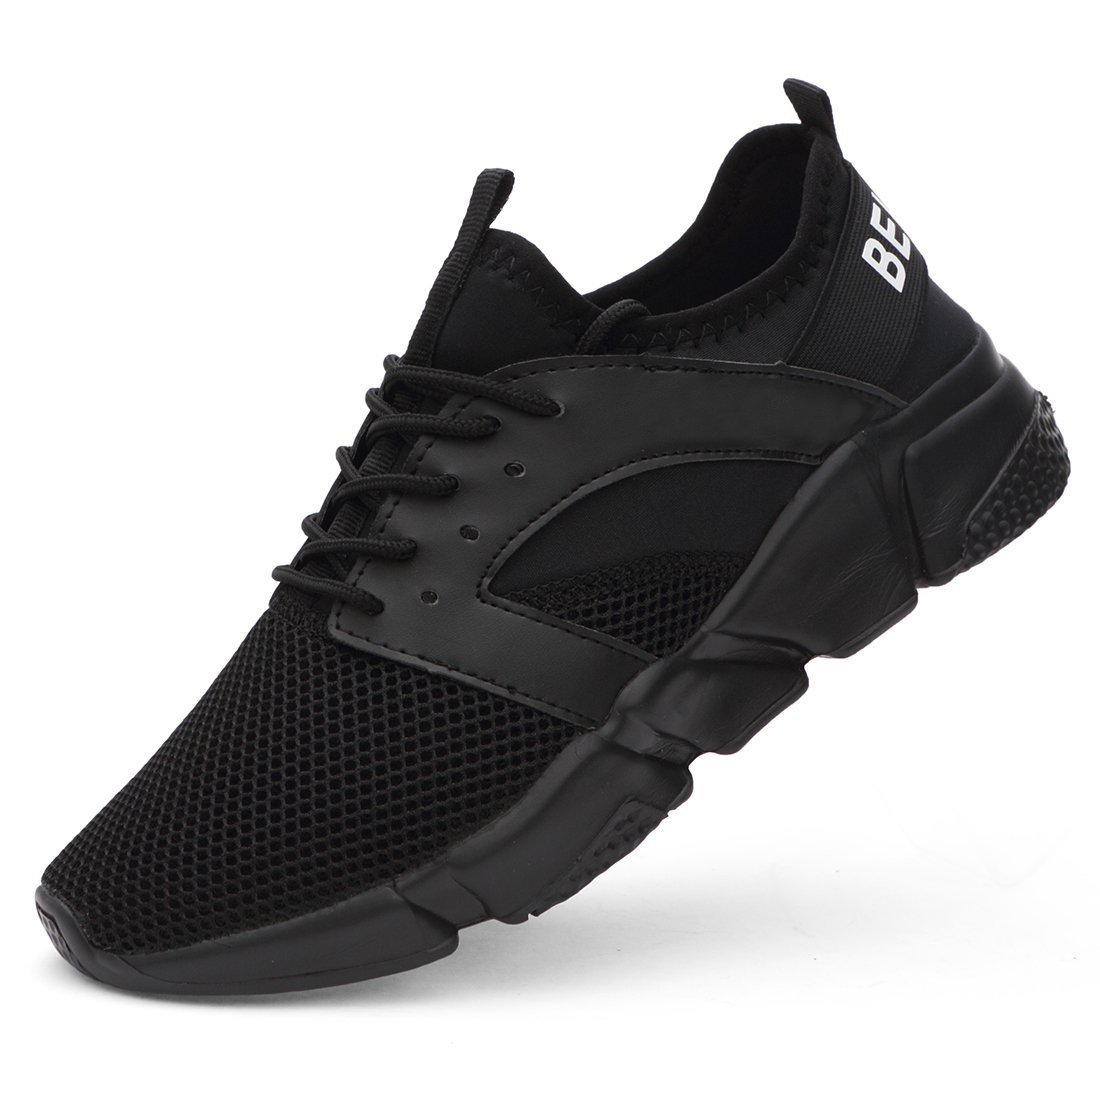 Men's Lightweight Walking Shoes Breathable Mesh Soft Sole for Casual Walk Outdoor Workout Travel Work